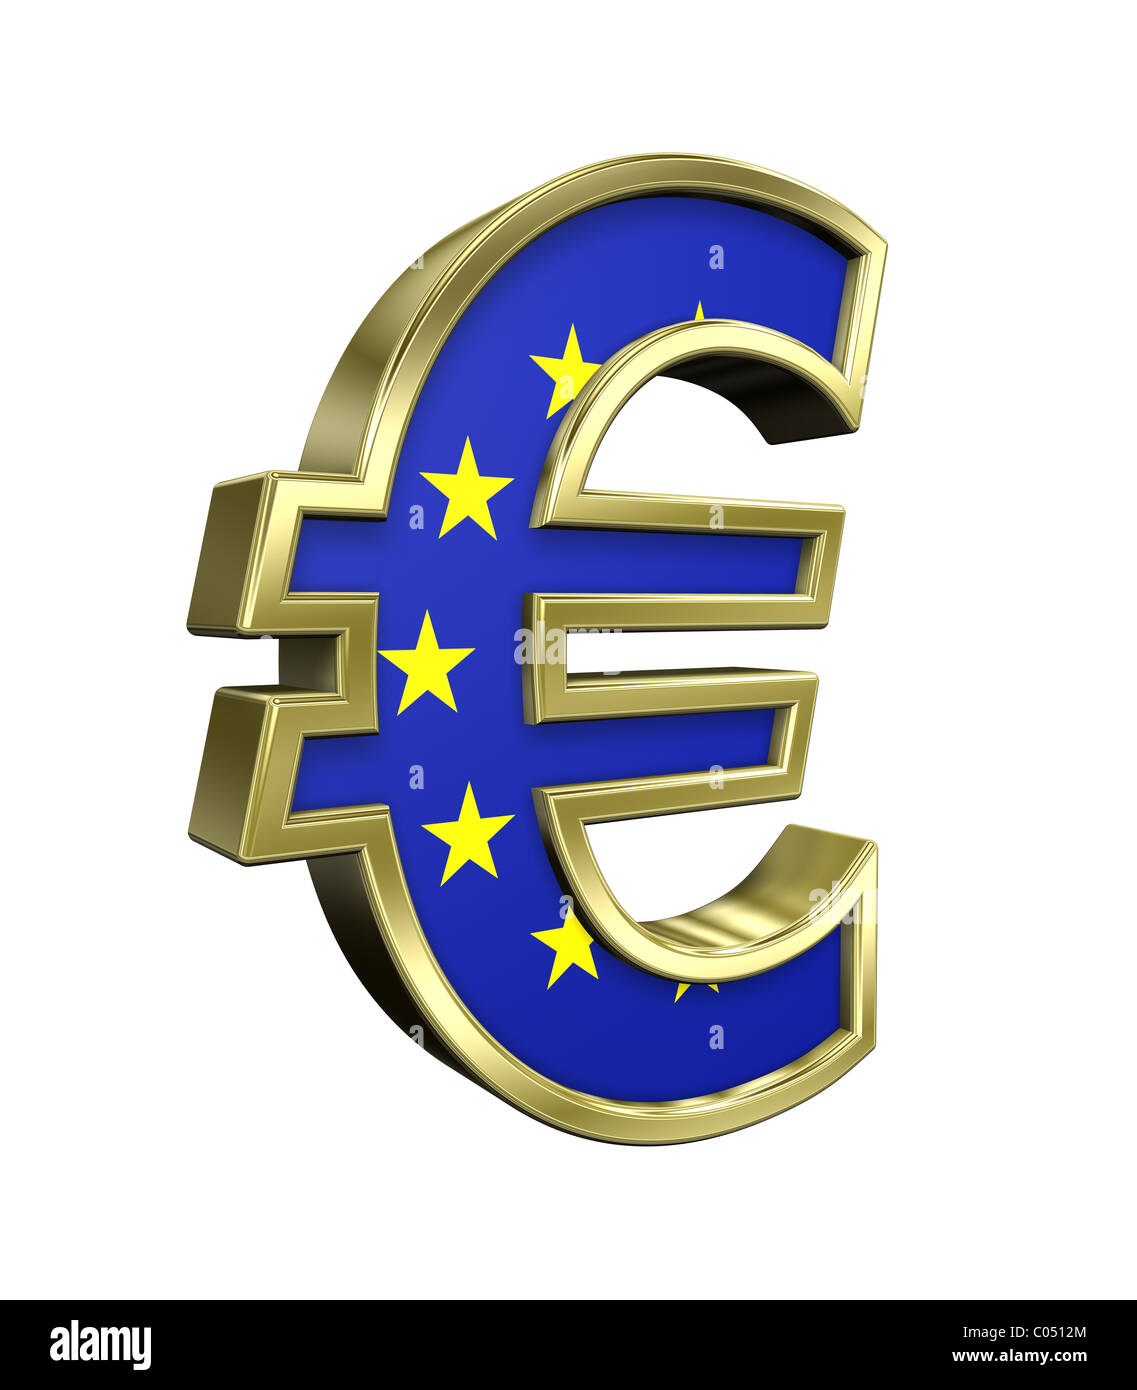 Gold Euro sign with european union flag isolated on white - Stock Image